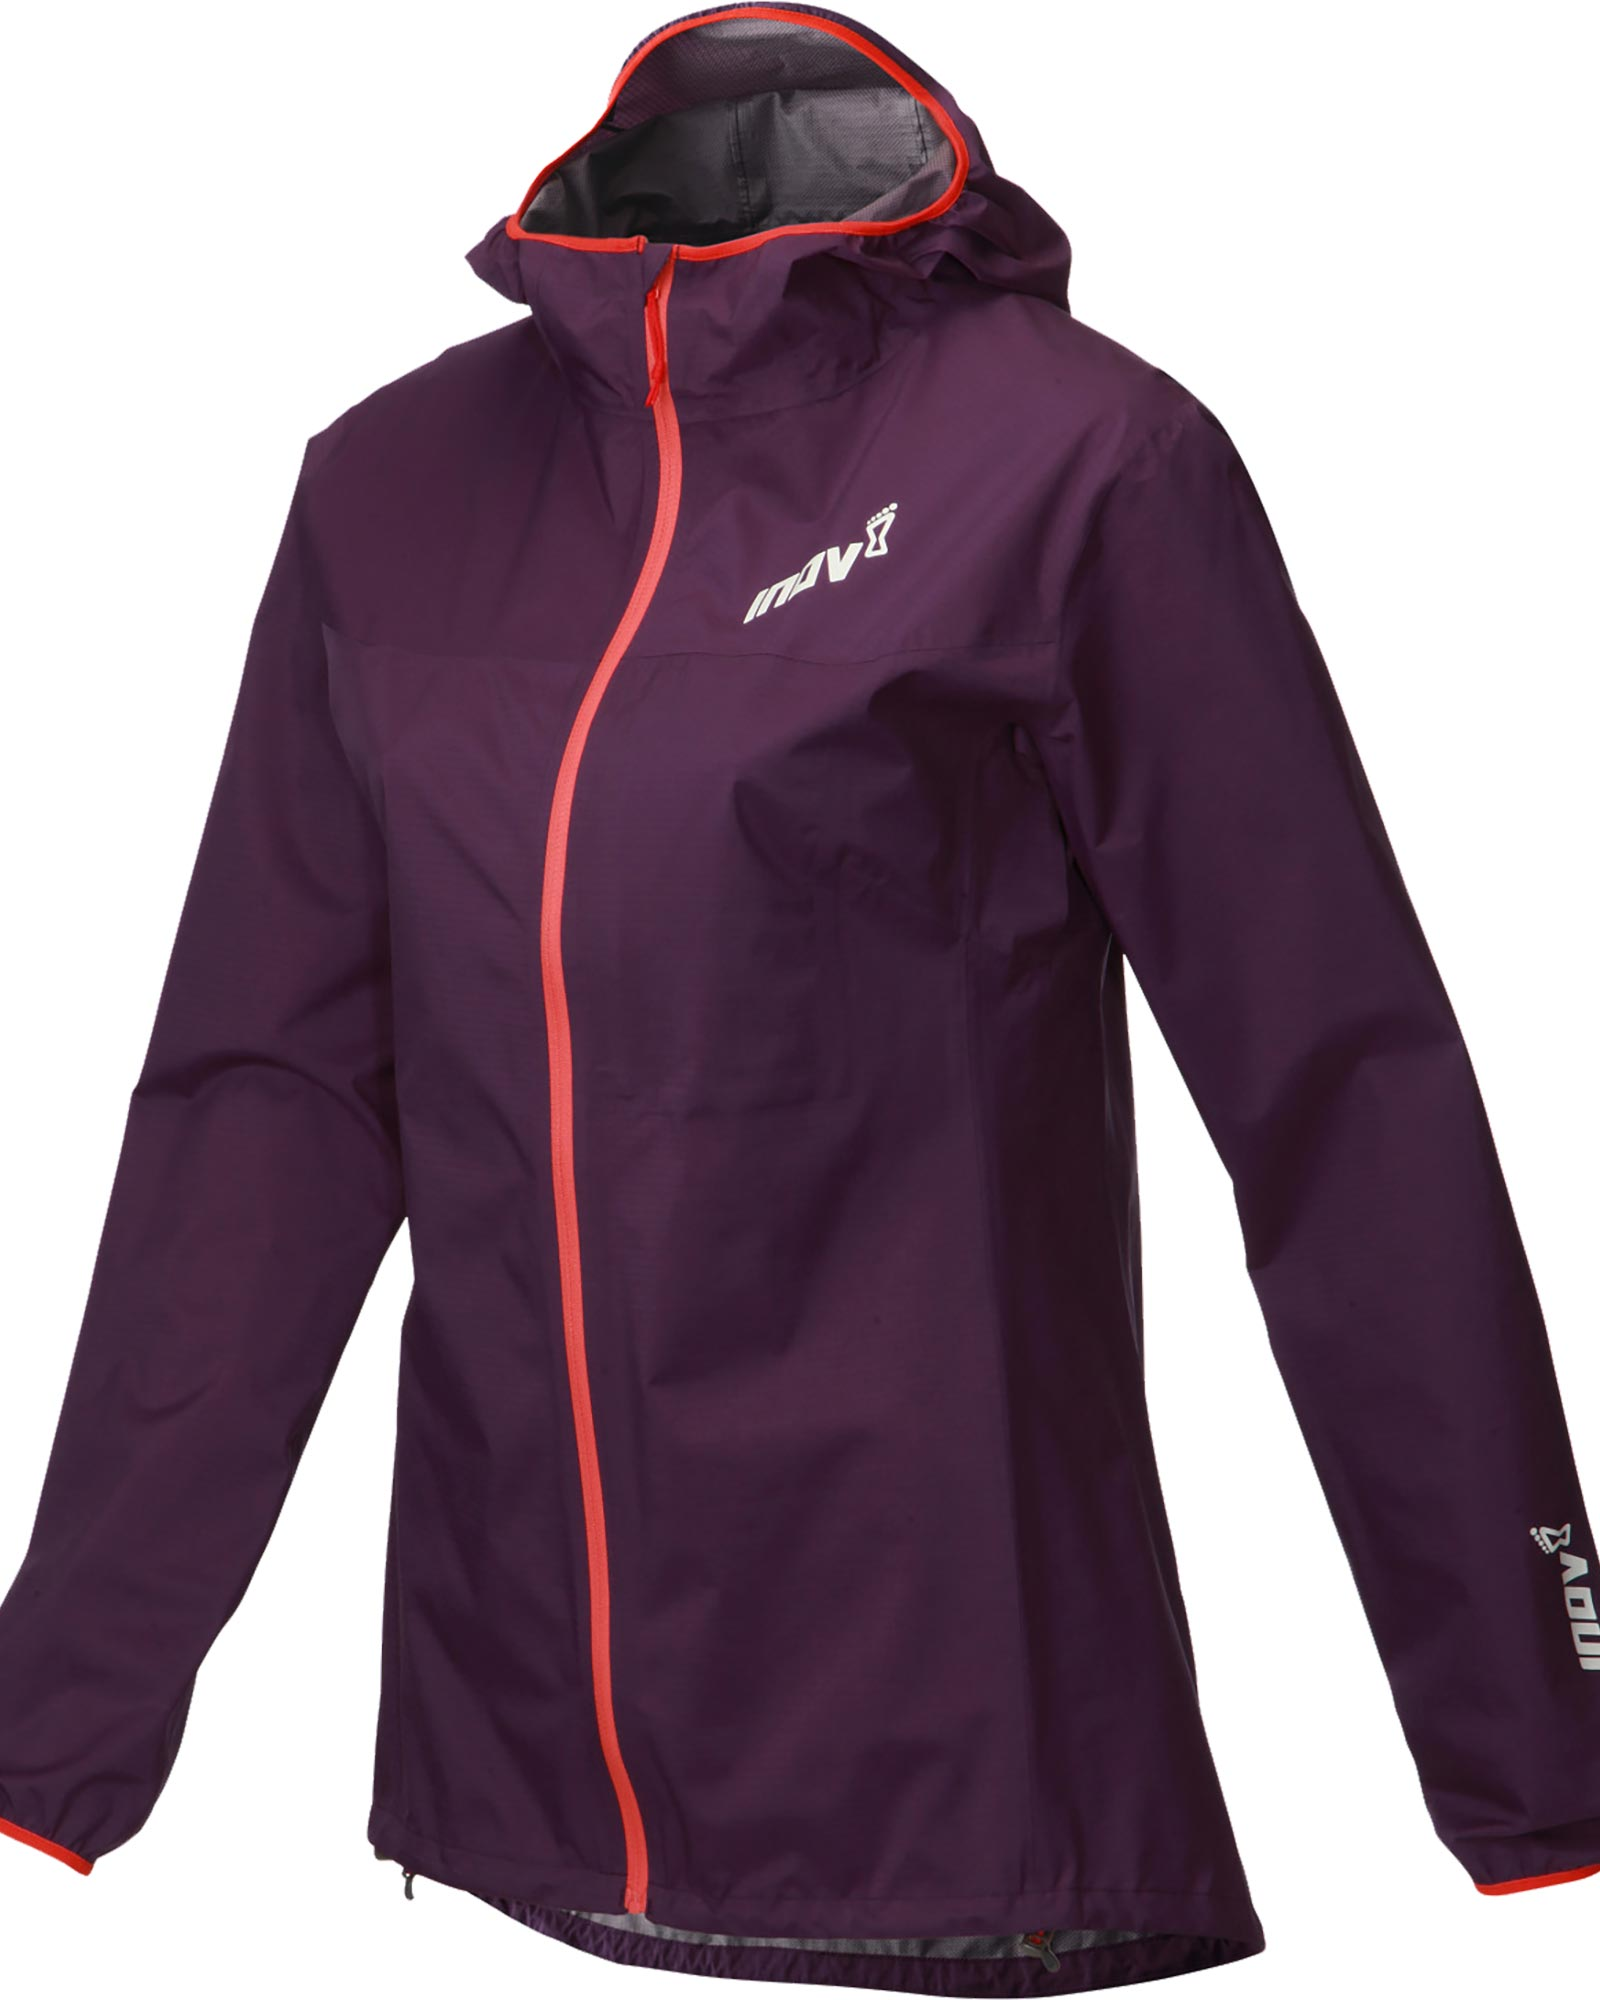 Inov-8 Women's FZ Trailshell Pertex Shield Jacket 0